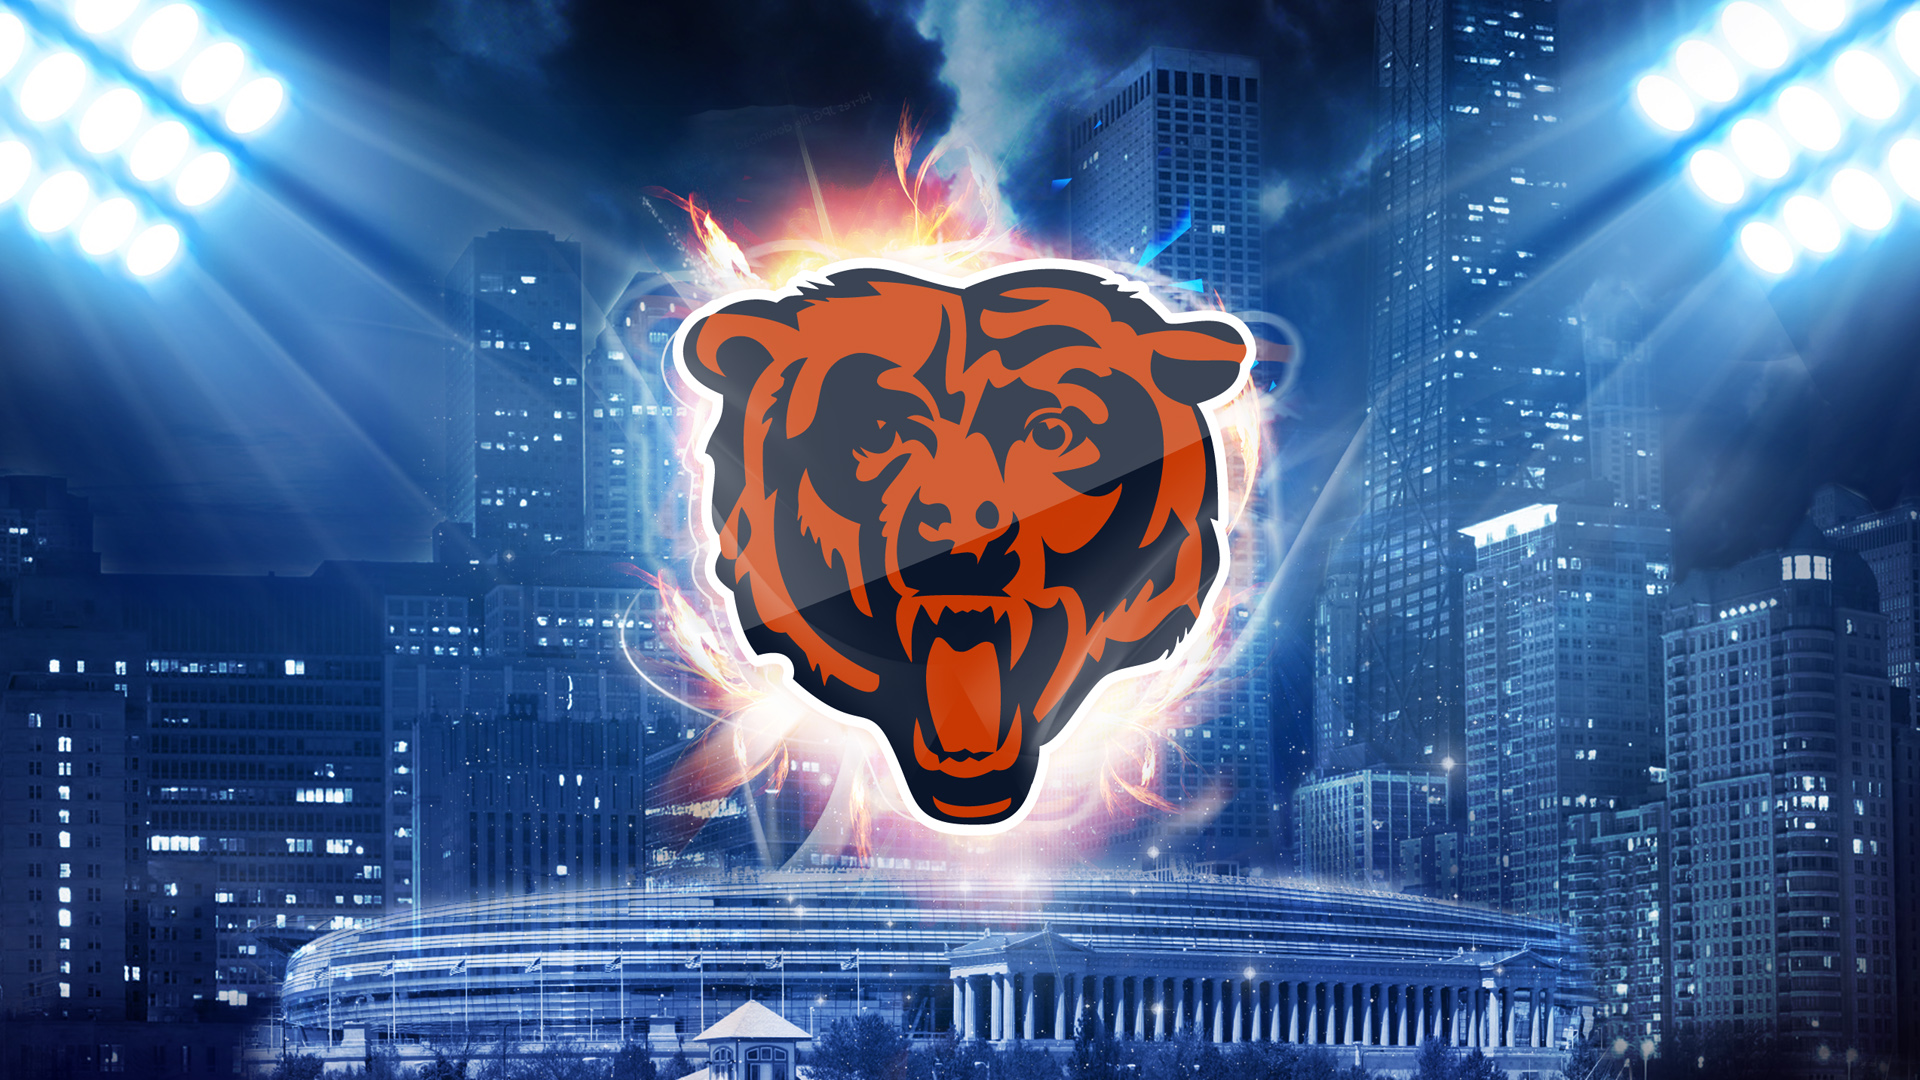 Chicago Bears 2013 Wallpapers 1920x1080